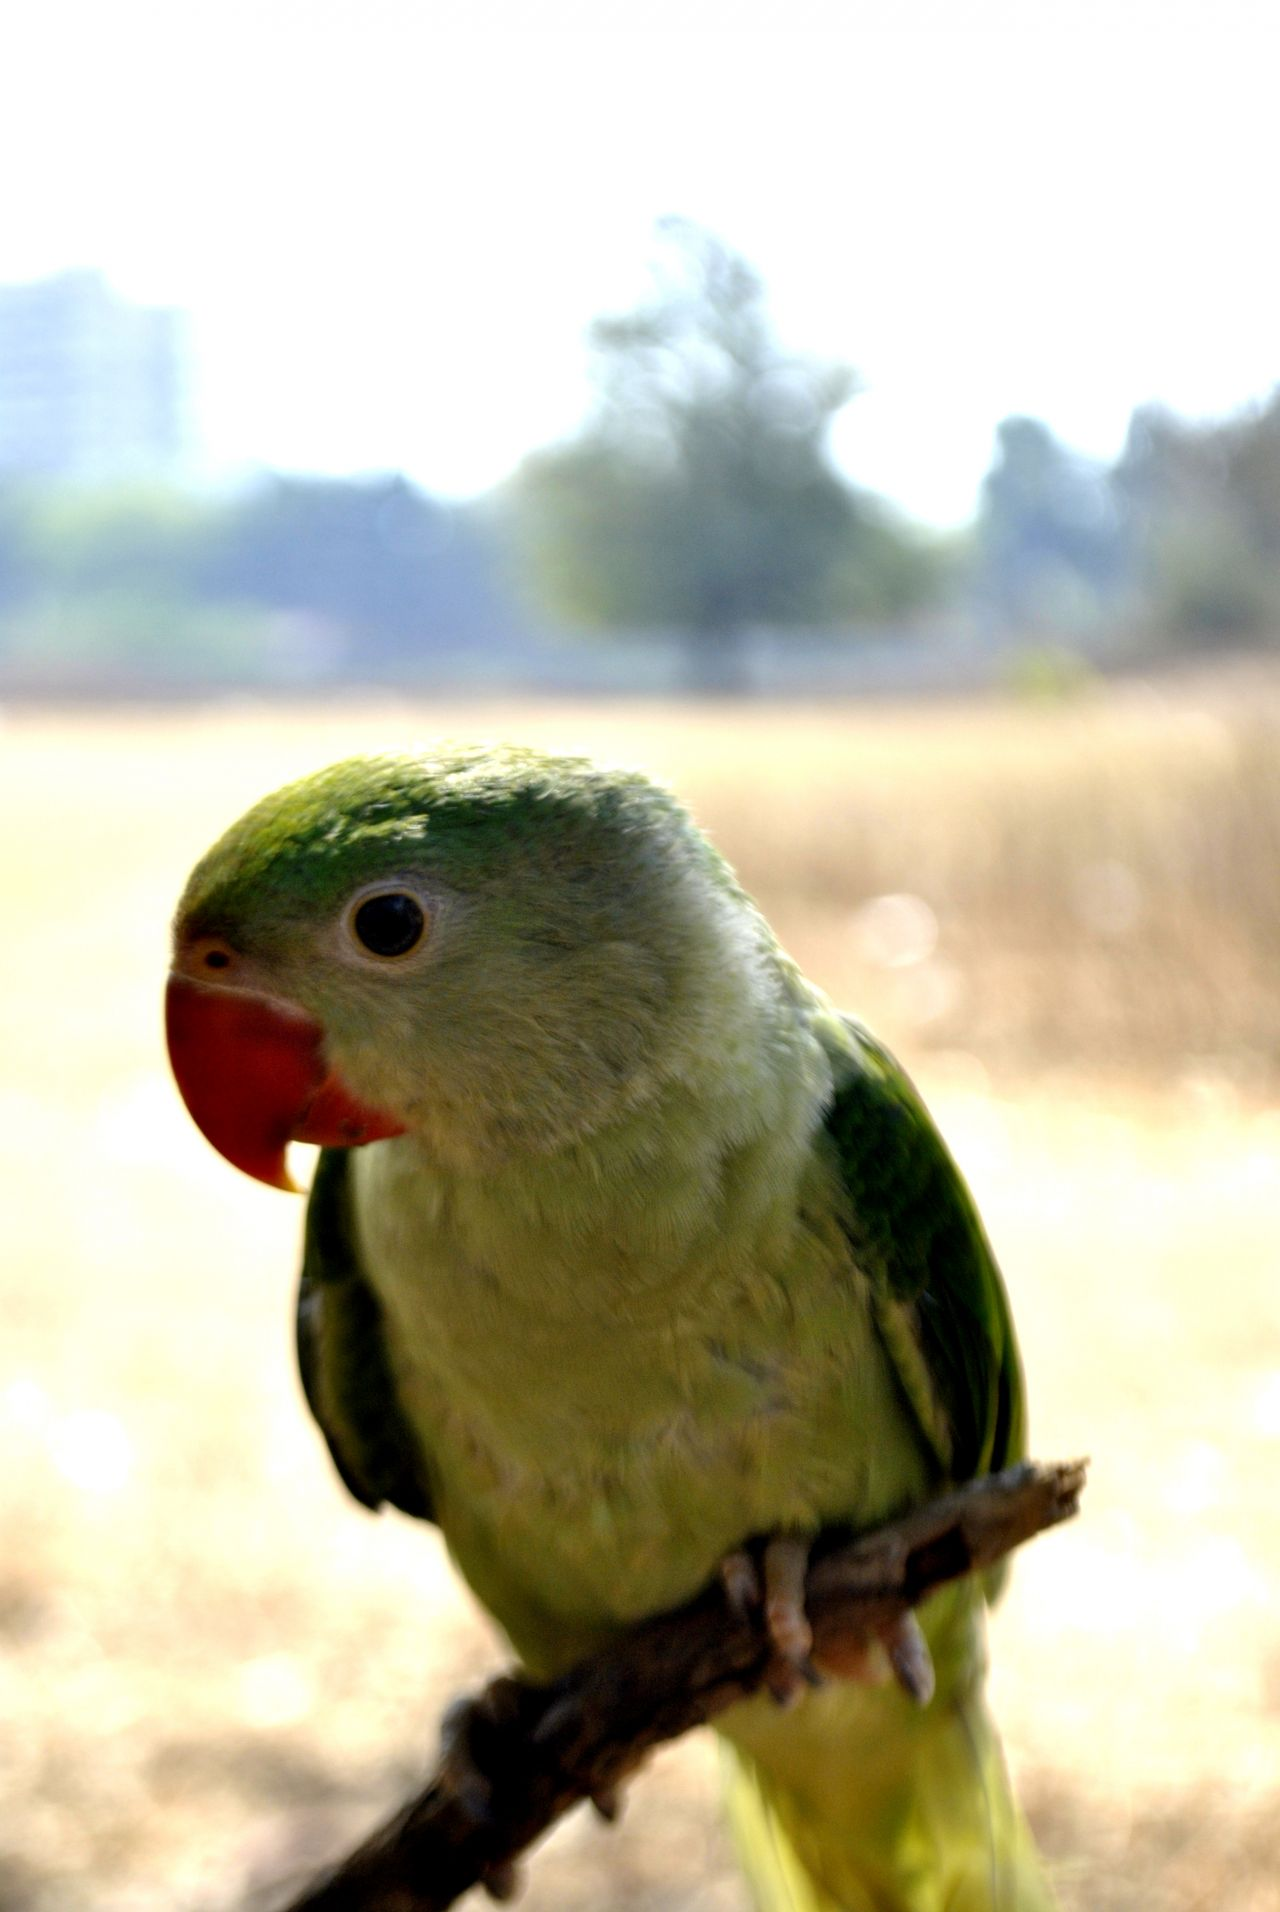 """Free photo """"Green Parrot 3"""""""